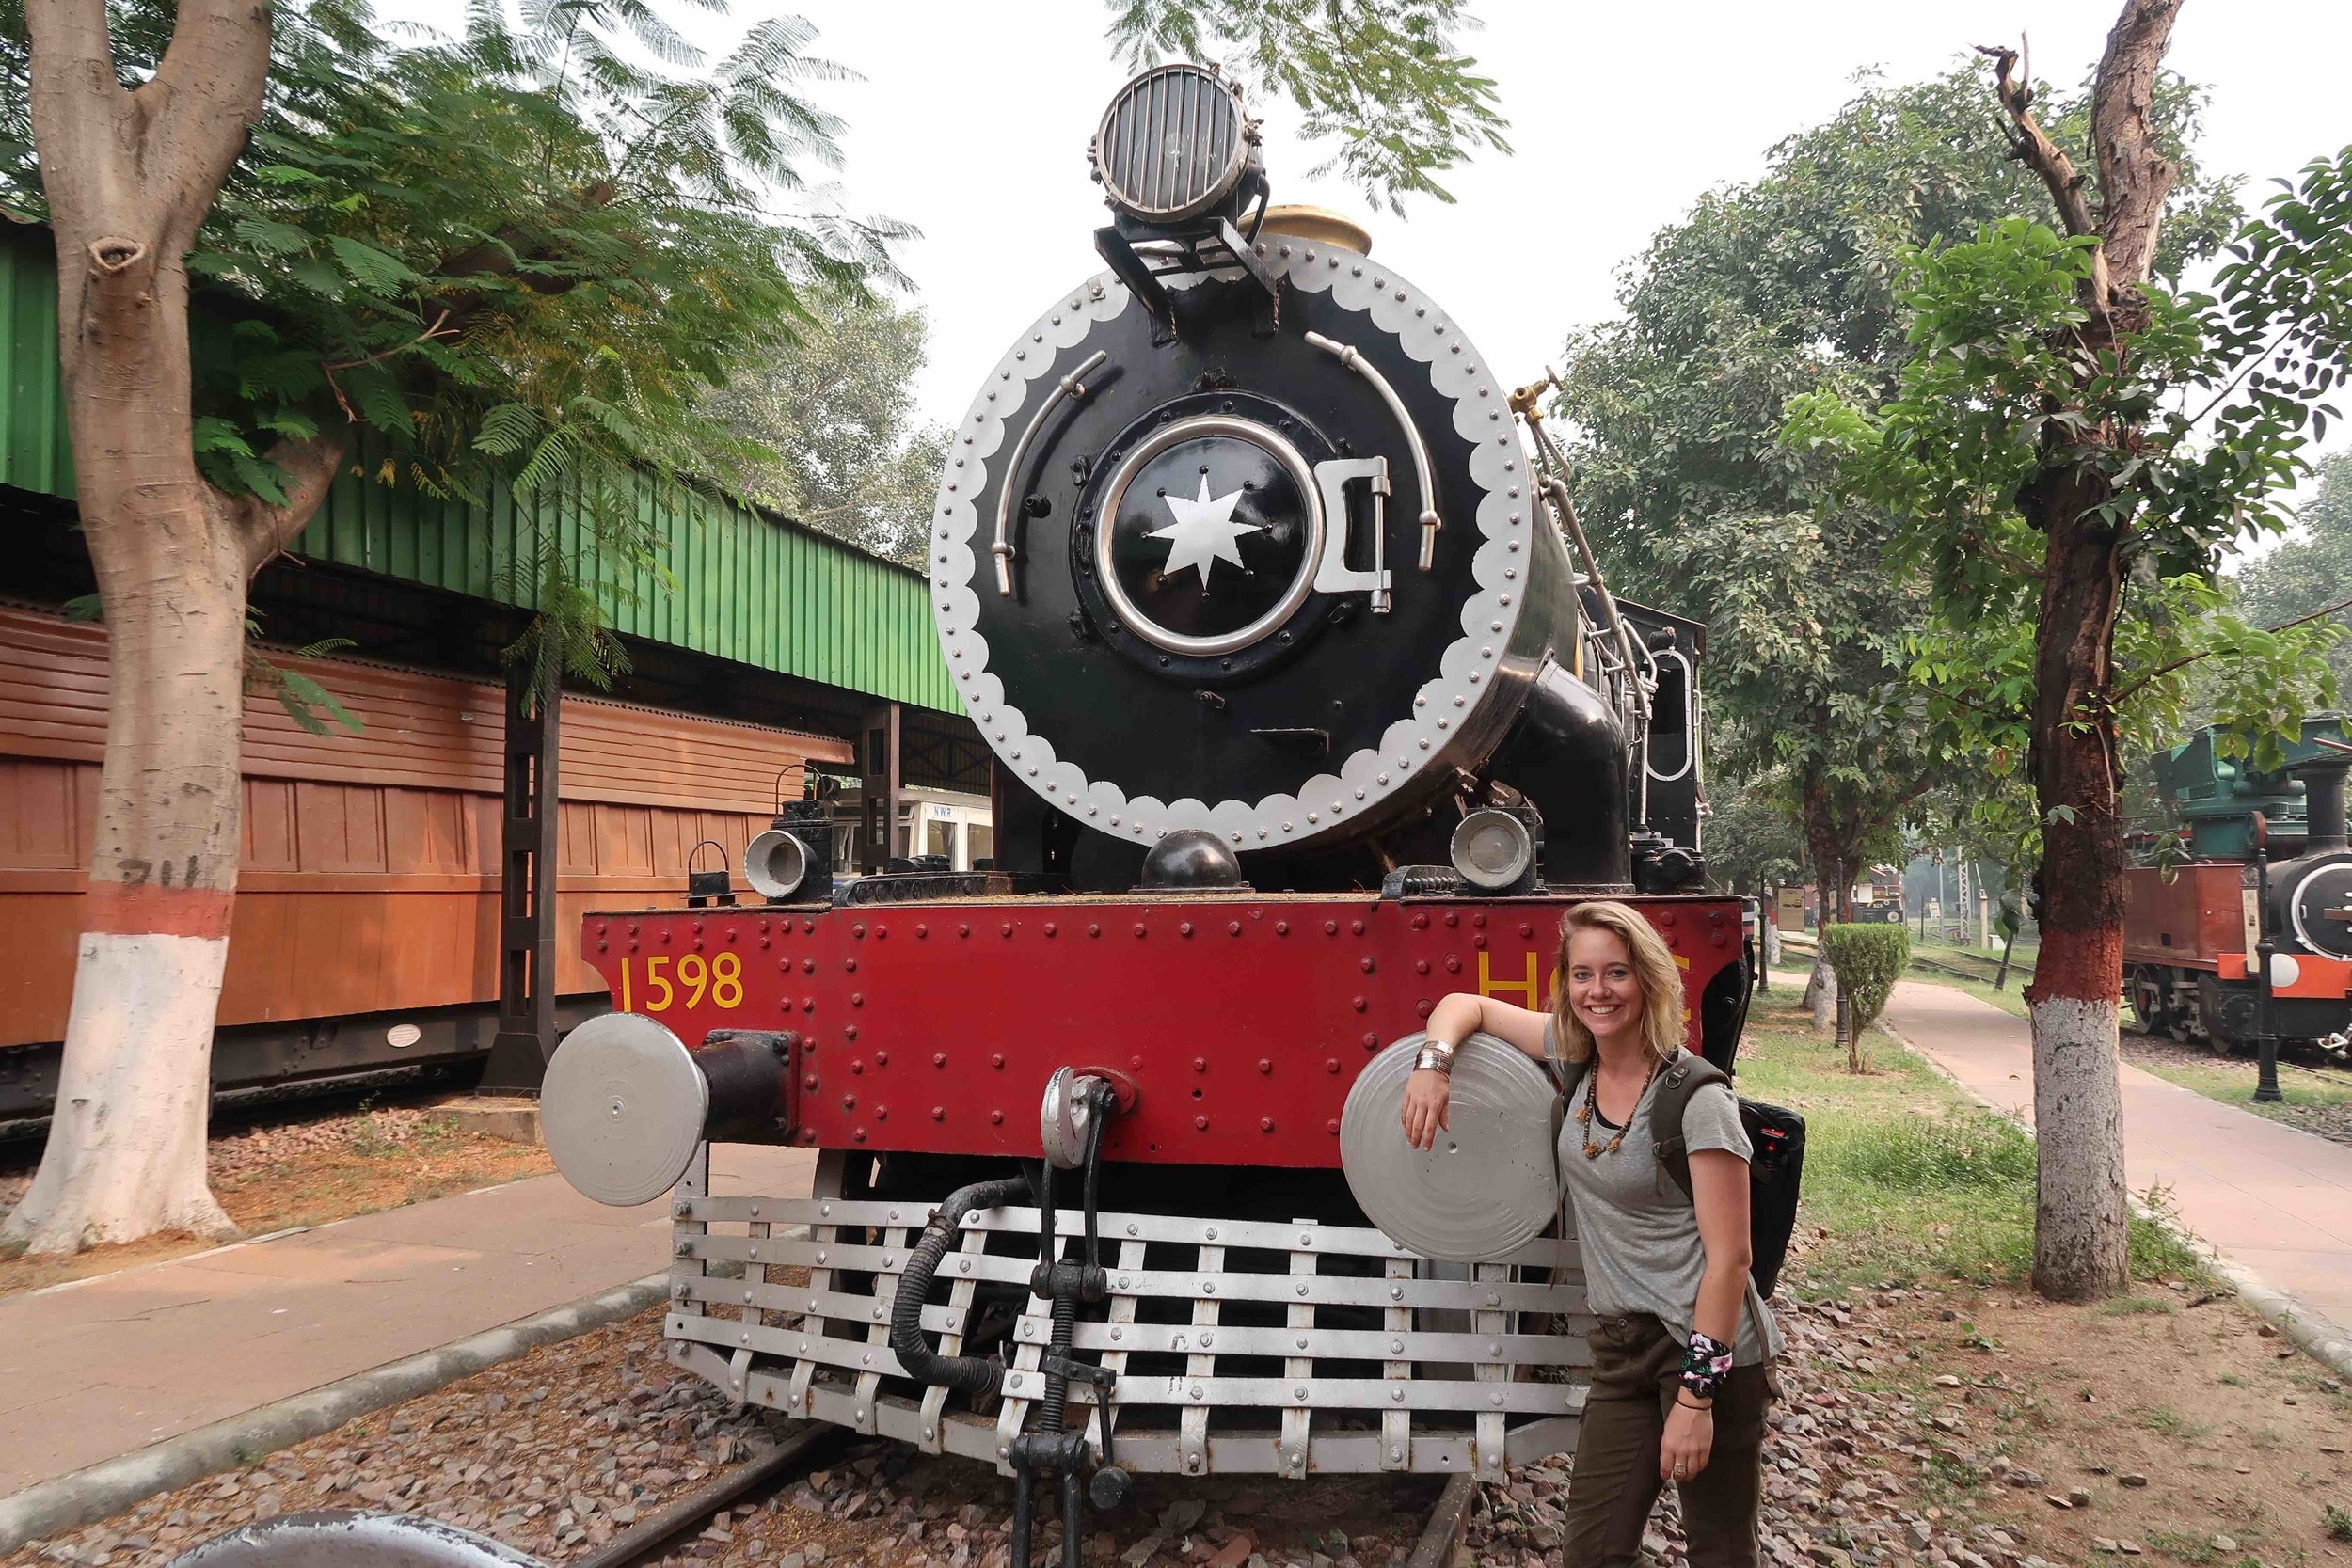 Get your inner Sheldon out and visit the National Railway Museum in Delhi! Have a fire paan in Delhi! Or try one of these other unusual things to do in Delhi..